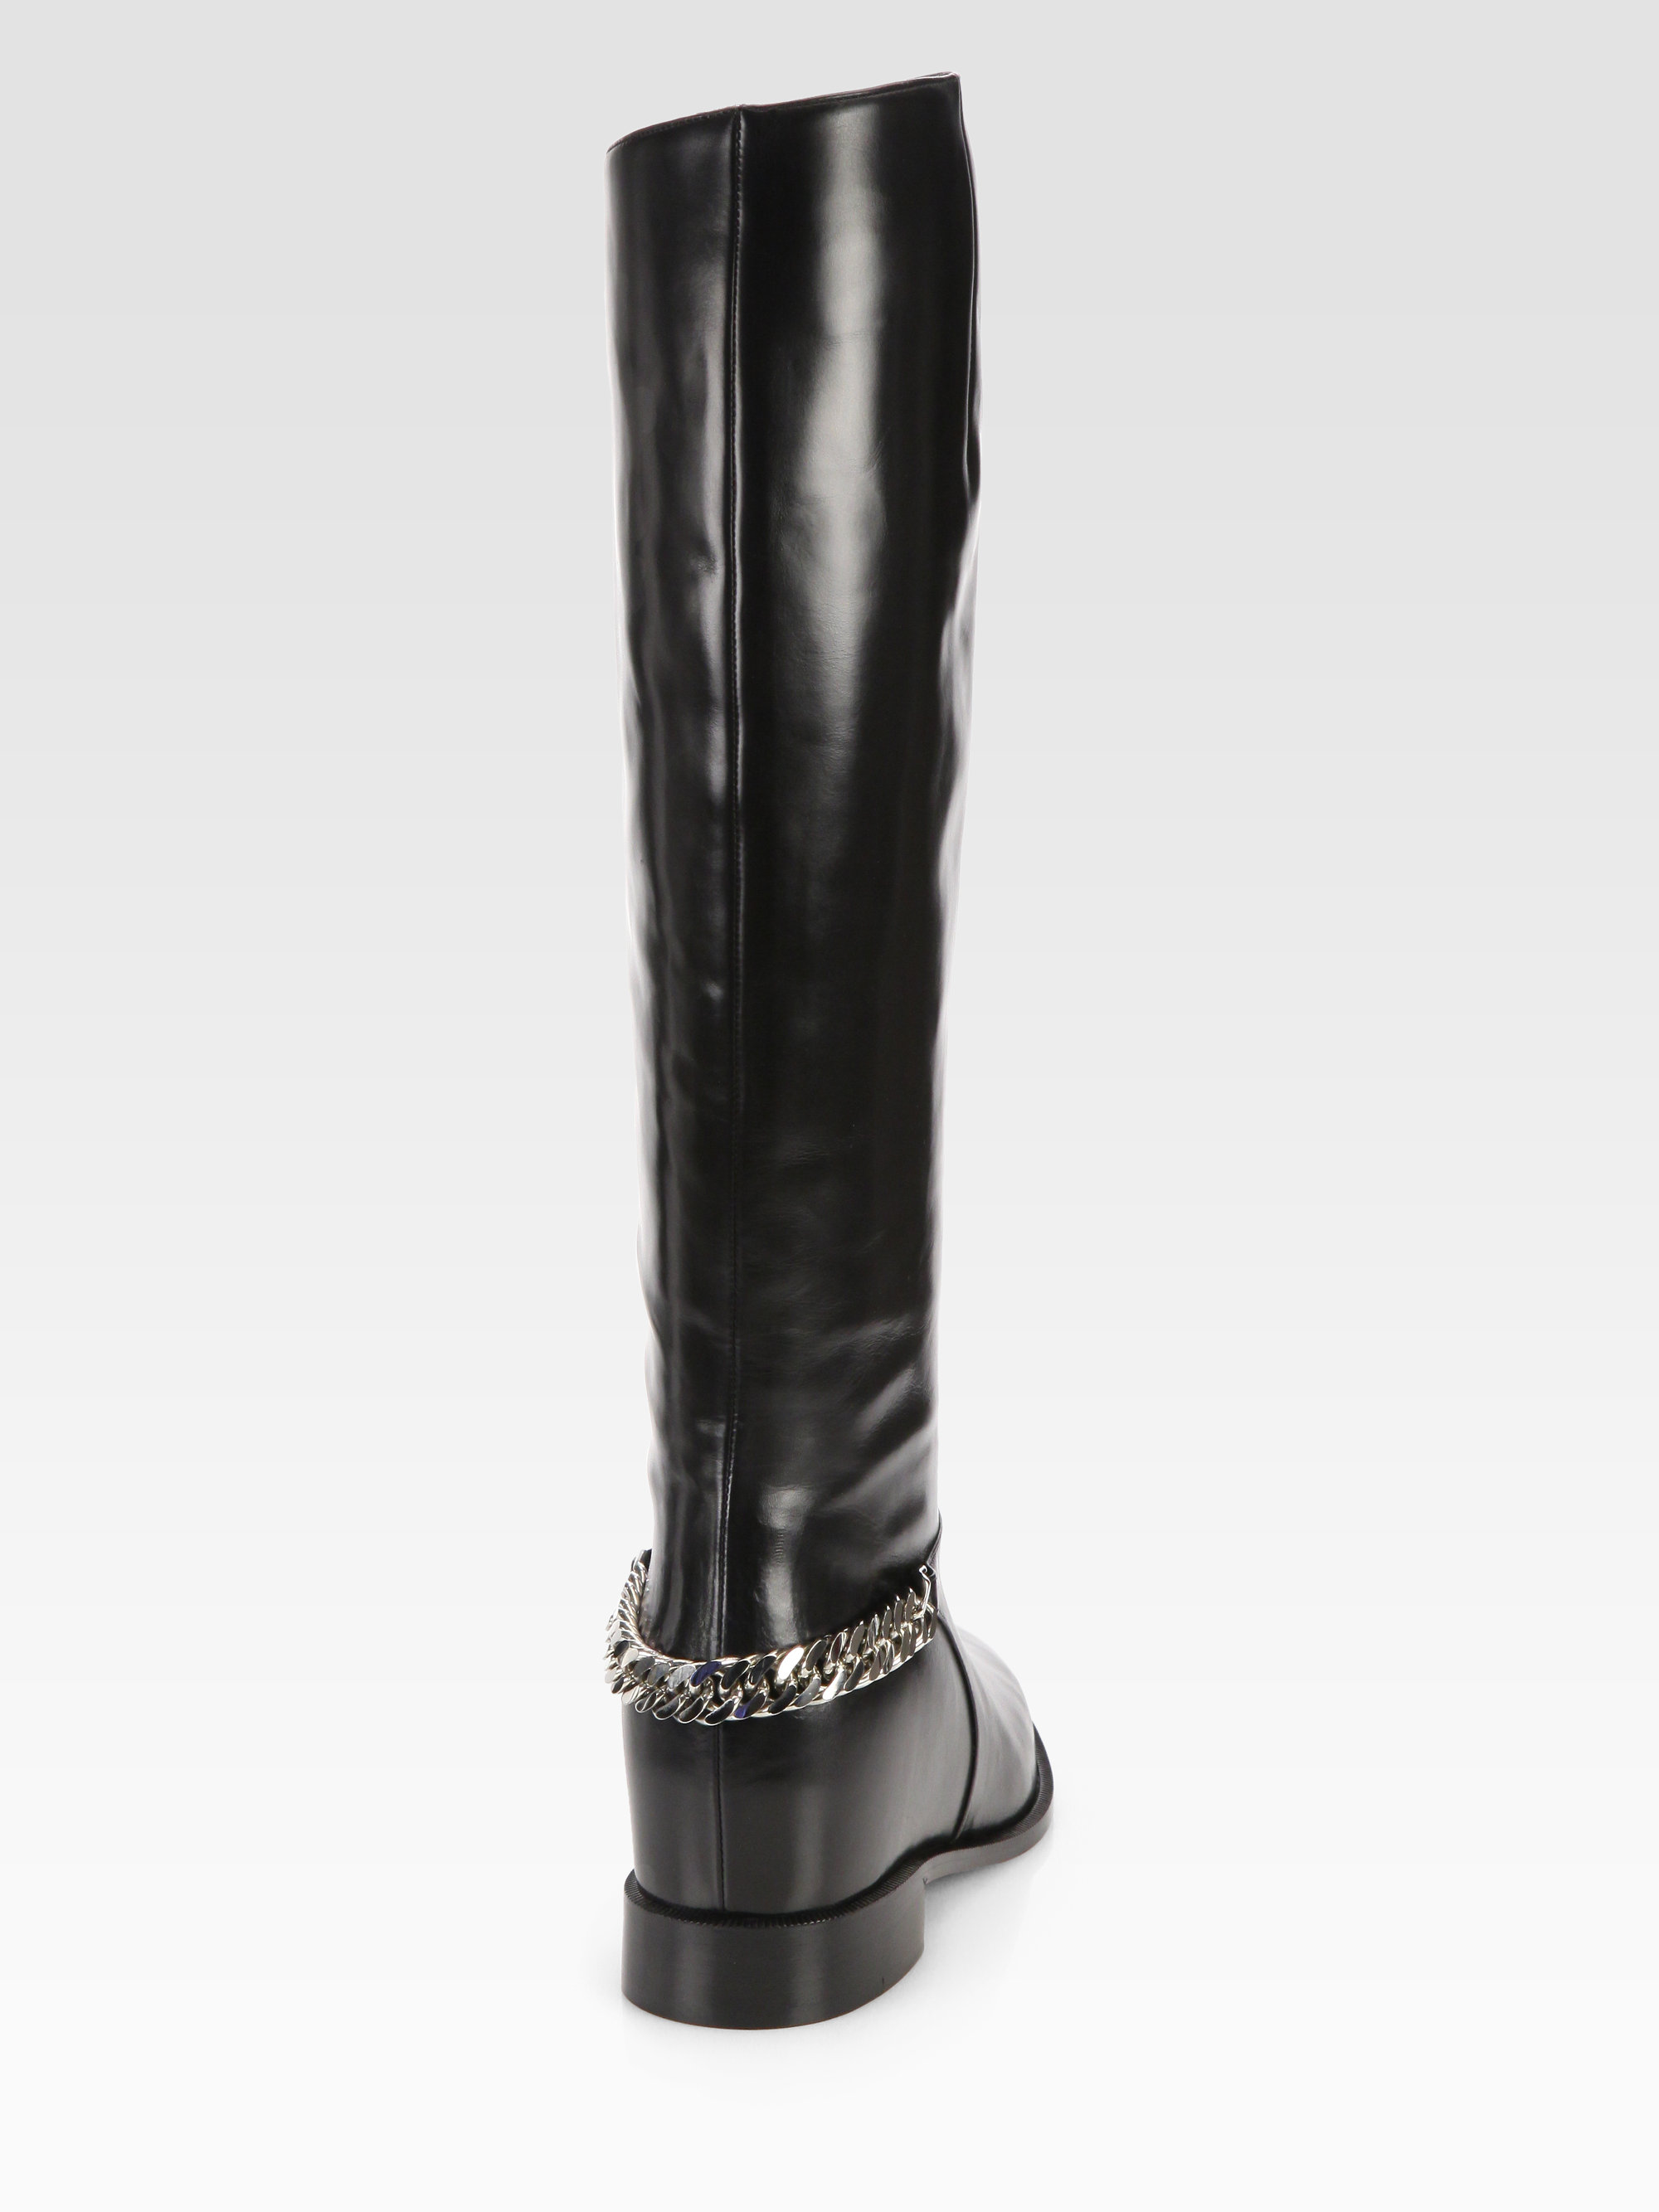 christian louboutin Cate knee-high boots | The Little Arts Academy